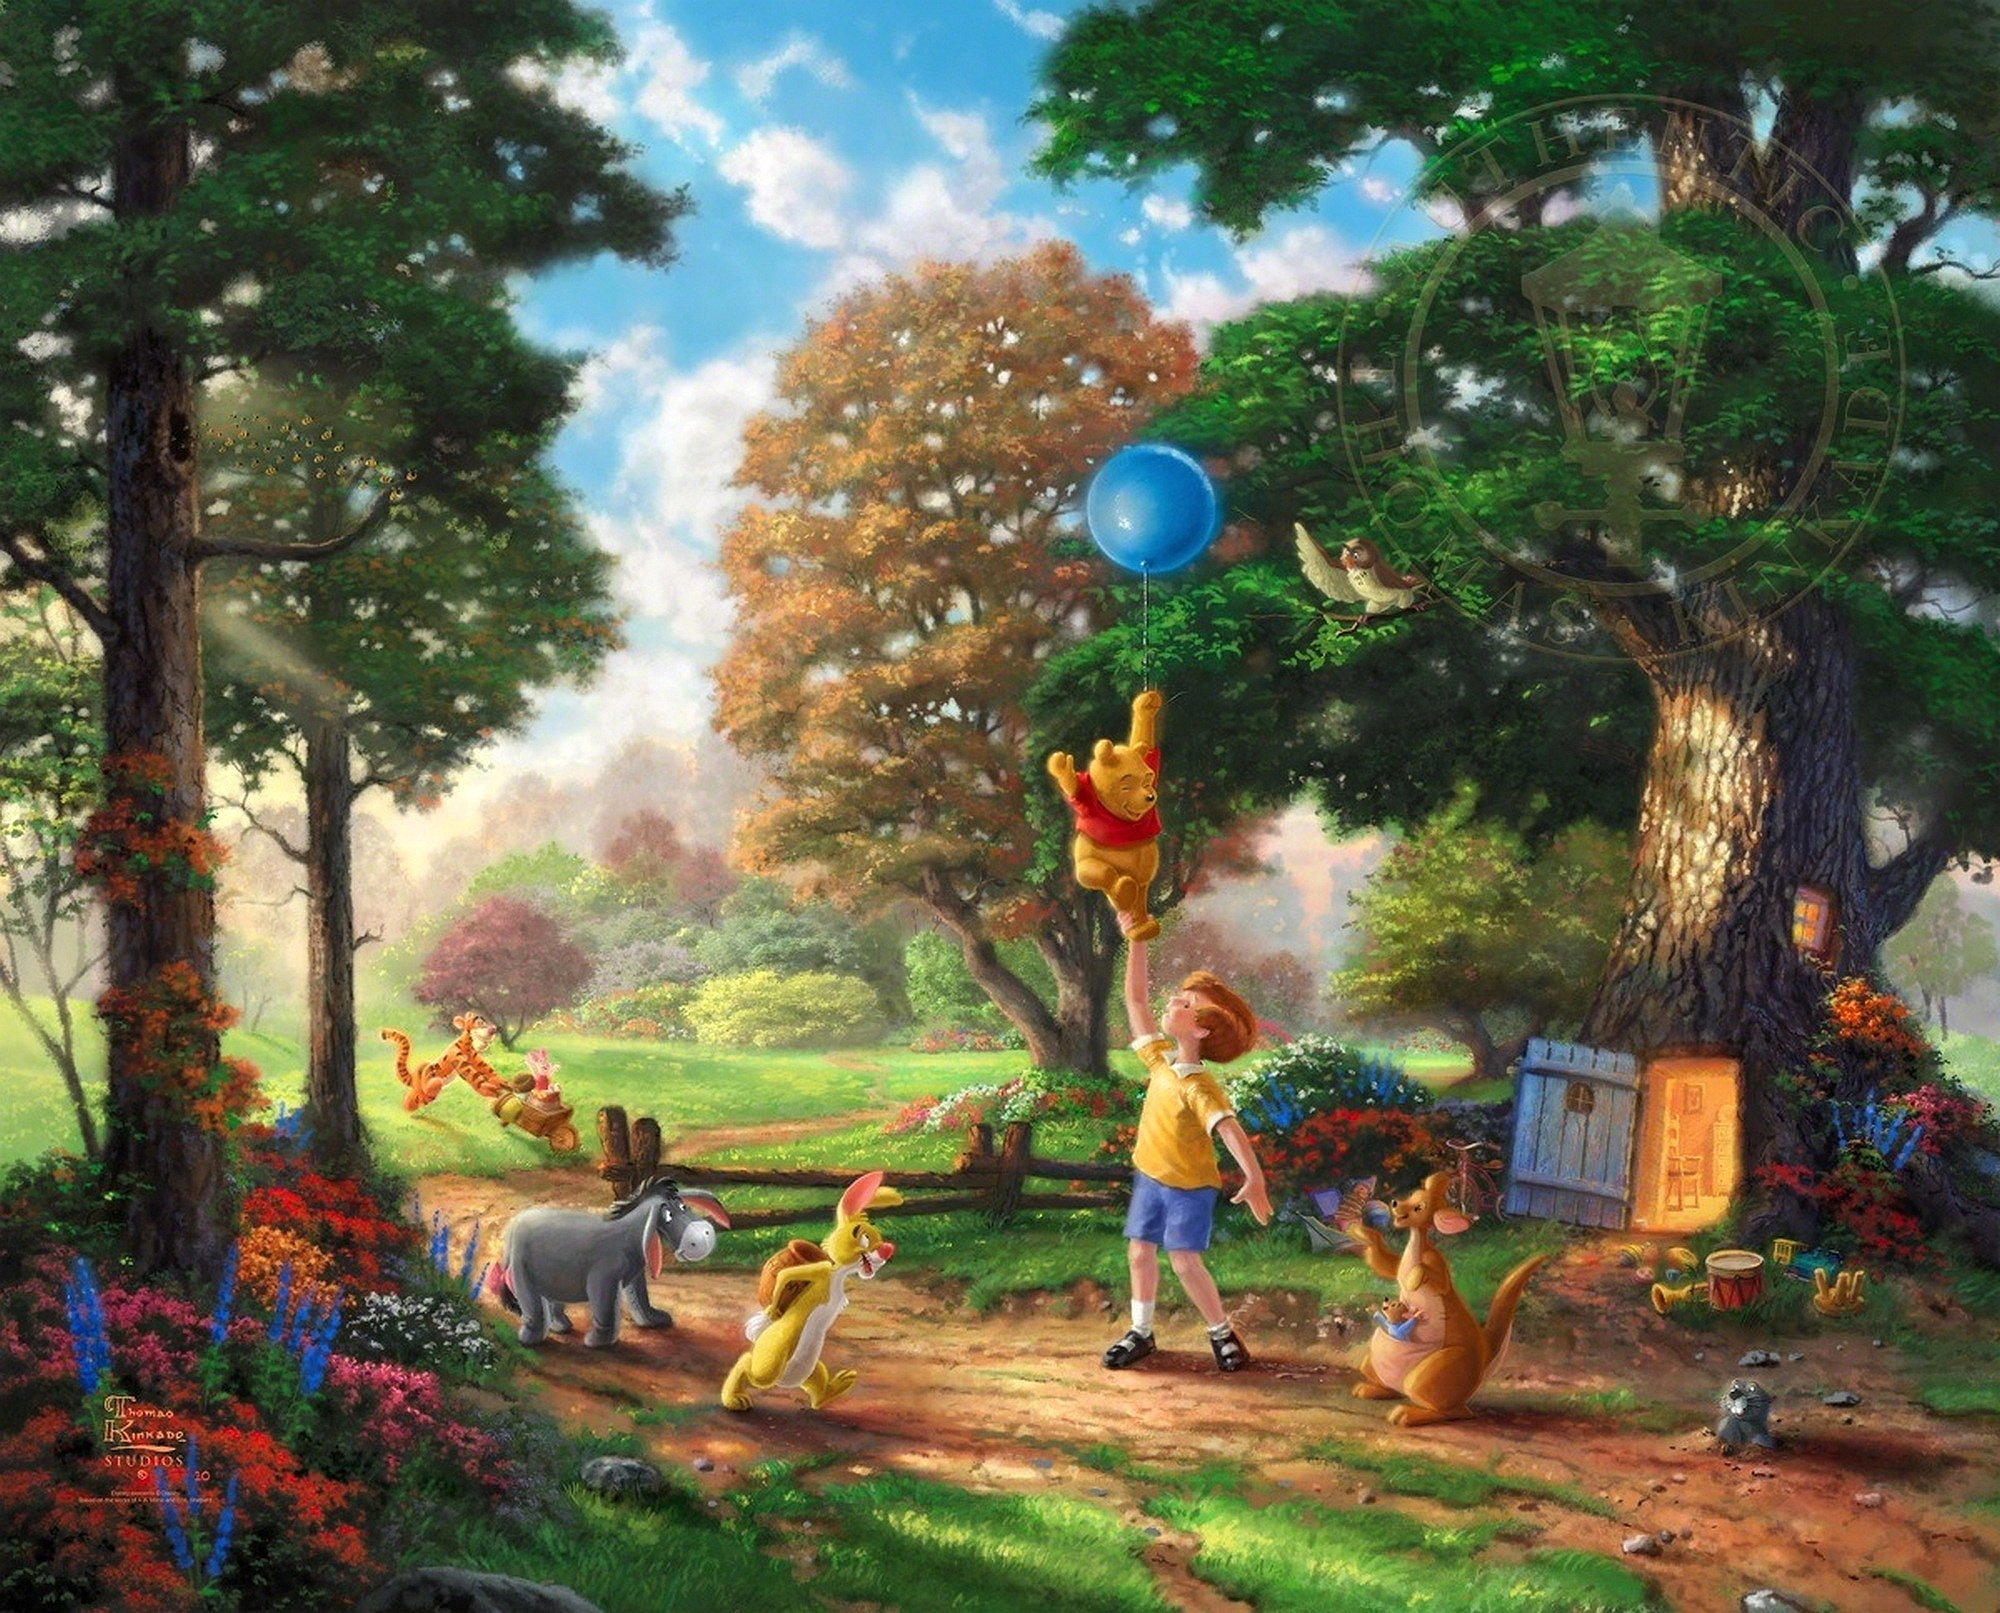 Winnie pooh thomas kinkade family disney fantasy wallpaper 2000x1613